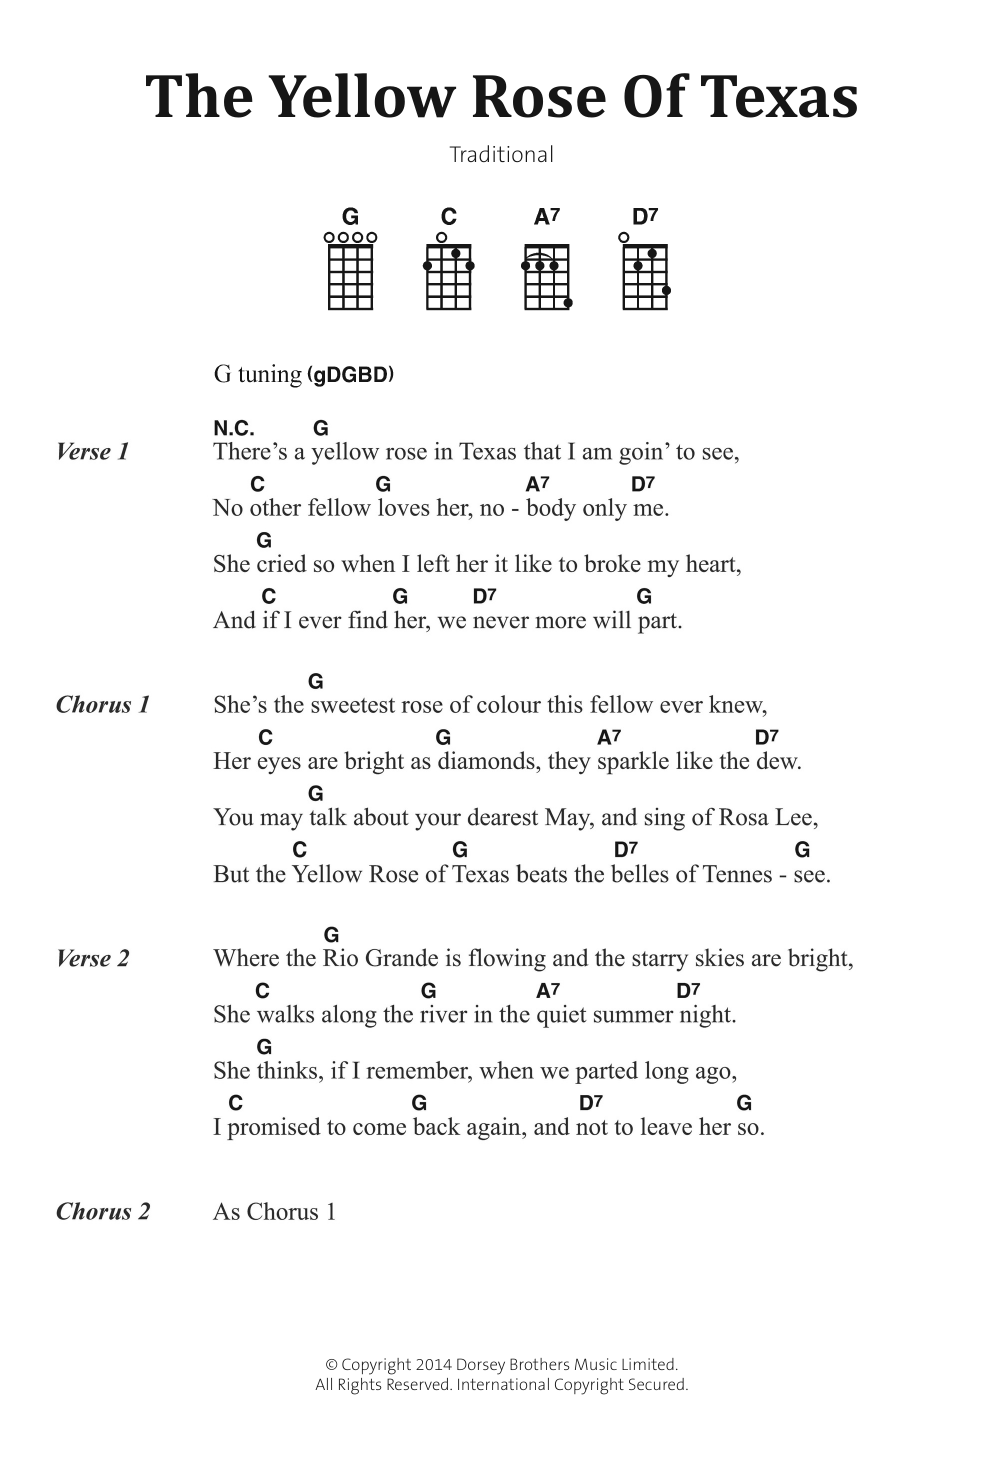 Traditional Folksong - The Yellow Rose Of Texas